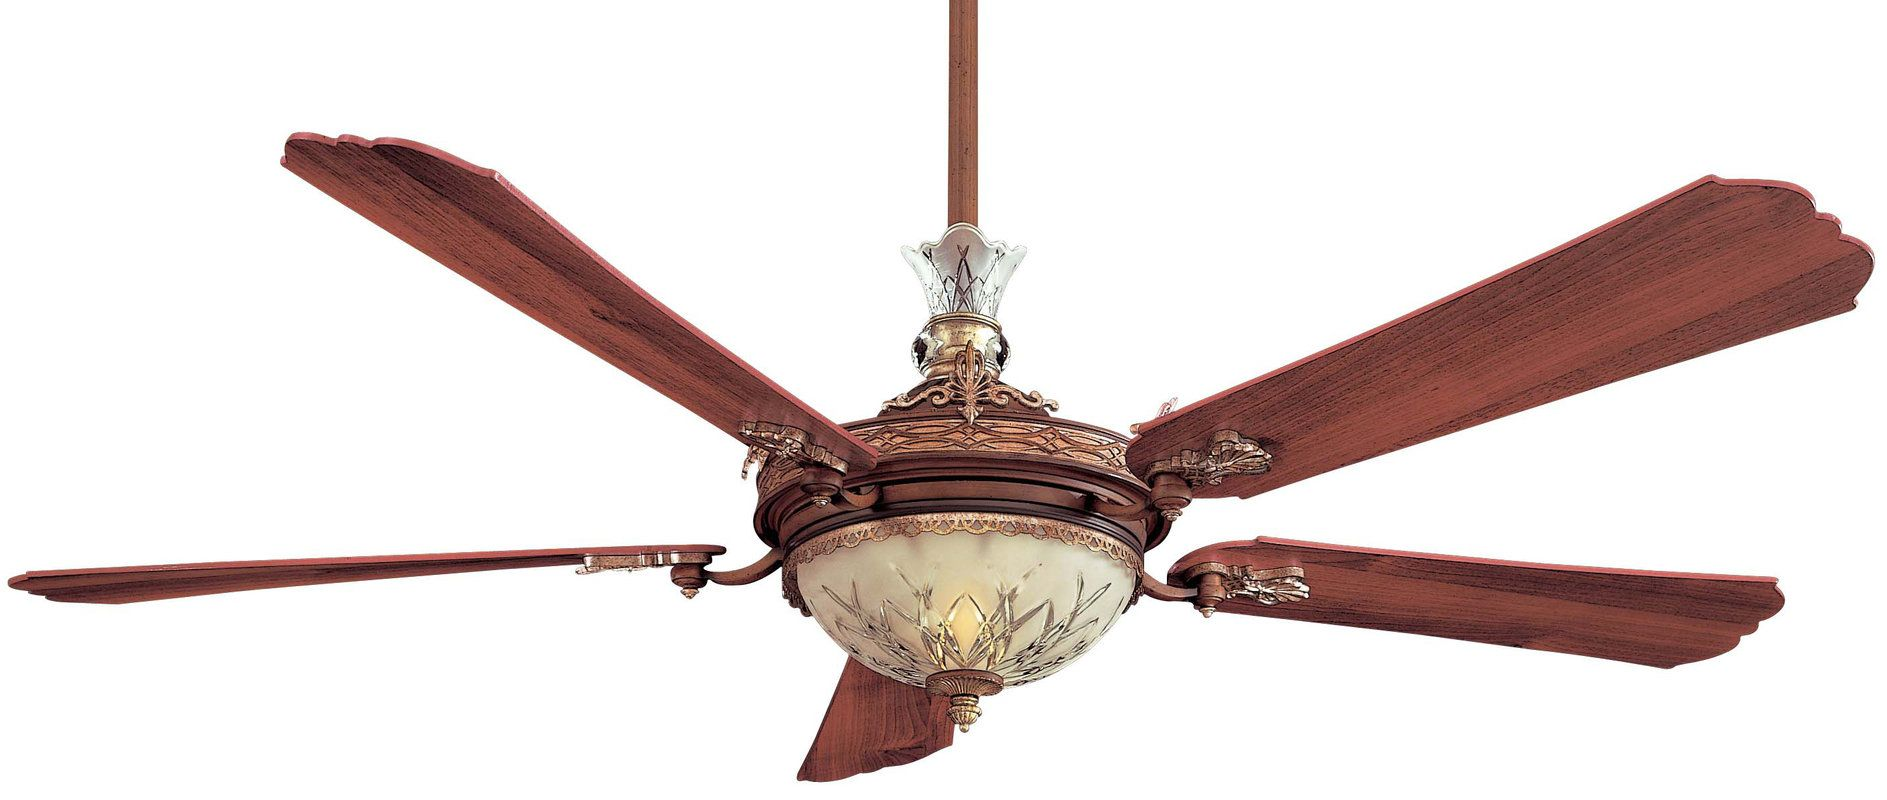 View the minkaaire cristafano 5 blade 68 ceiling fan light wall view the minkaaire cristafano 5 blade 68 ceiling fan light wall control and aloadofball Images